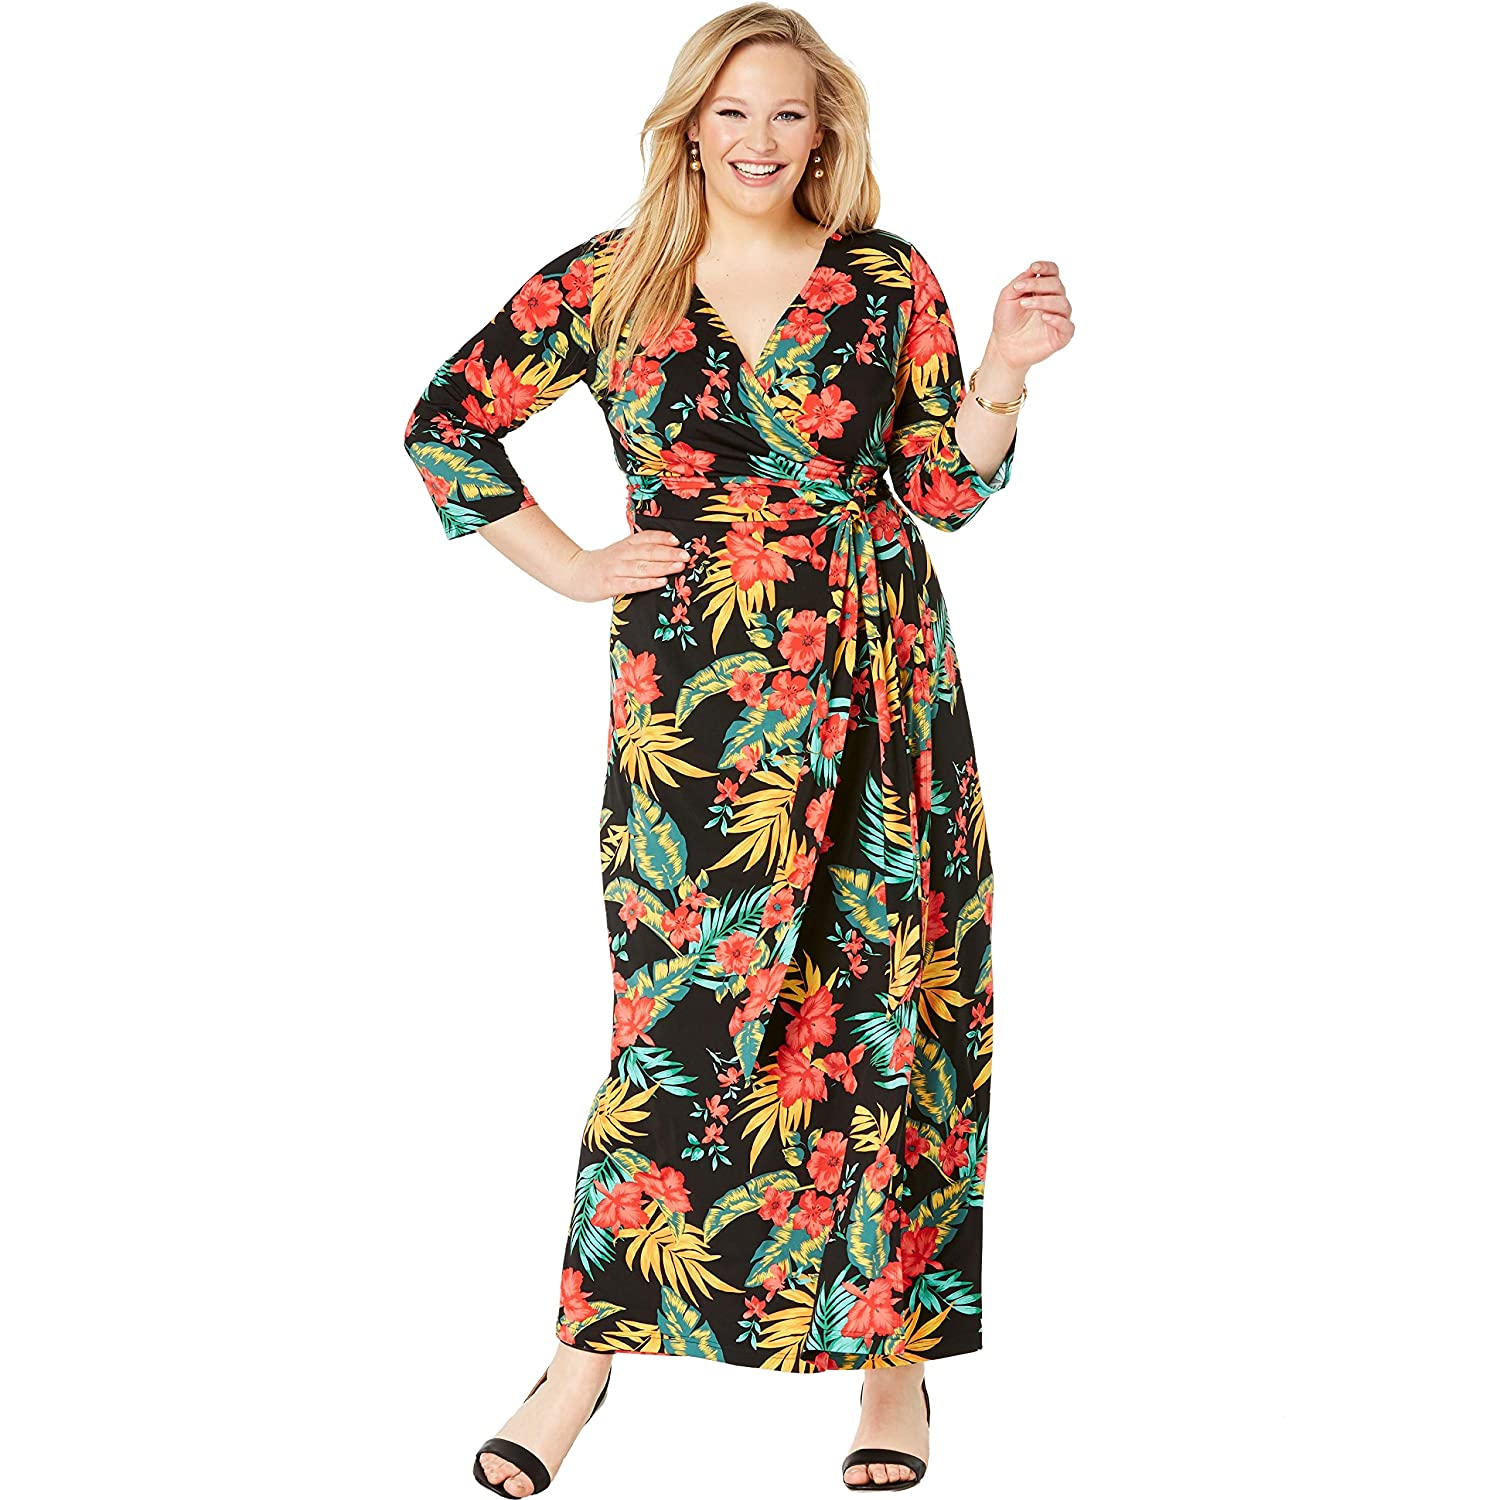 a952a658c6f Jessica London Women s Plus Size Faux Wrap Maxi Dress at Amazon Women s  Clothing store